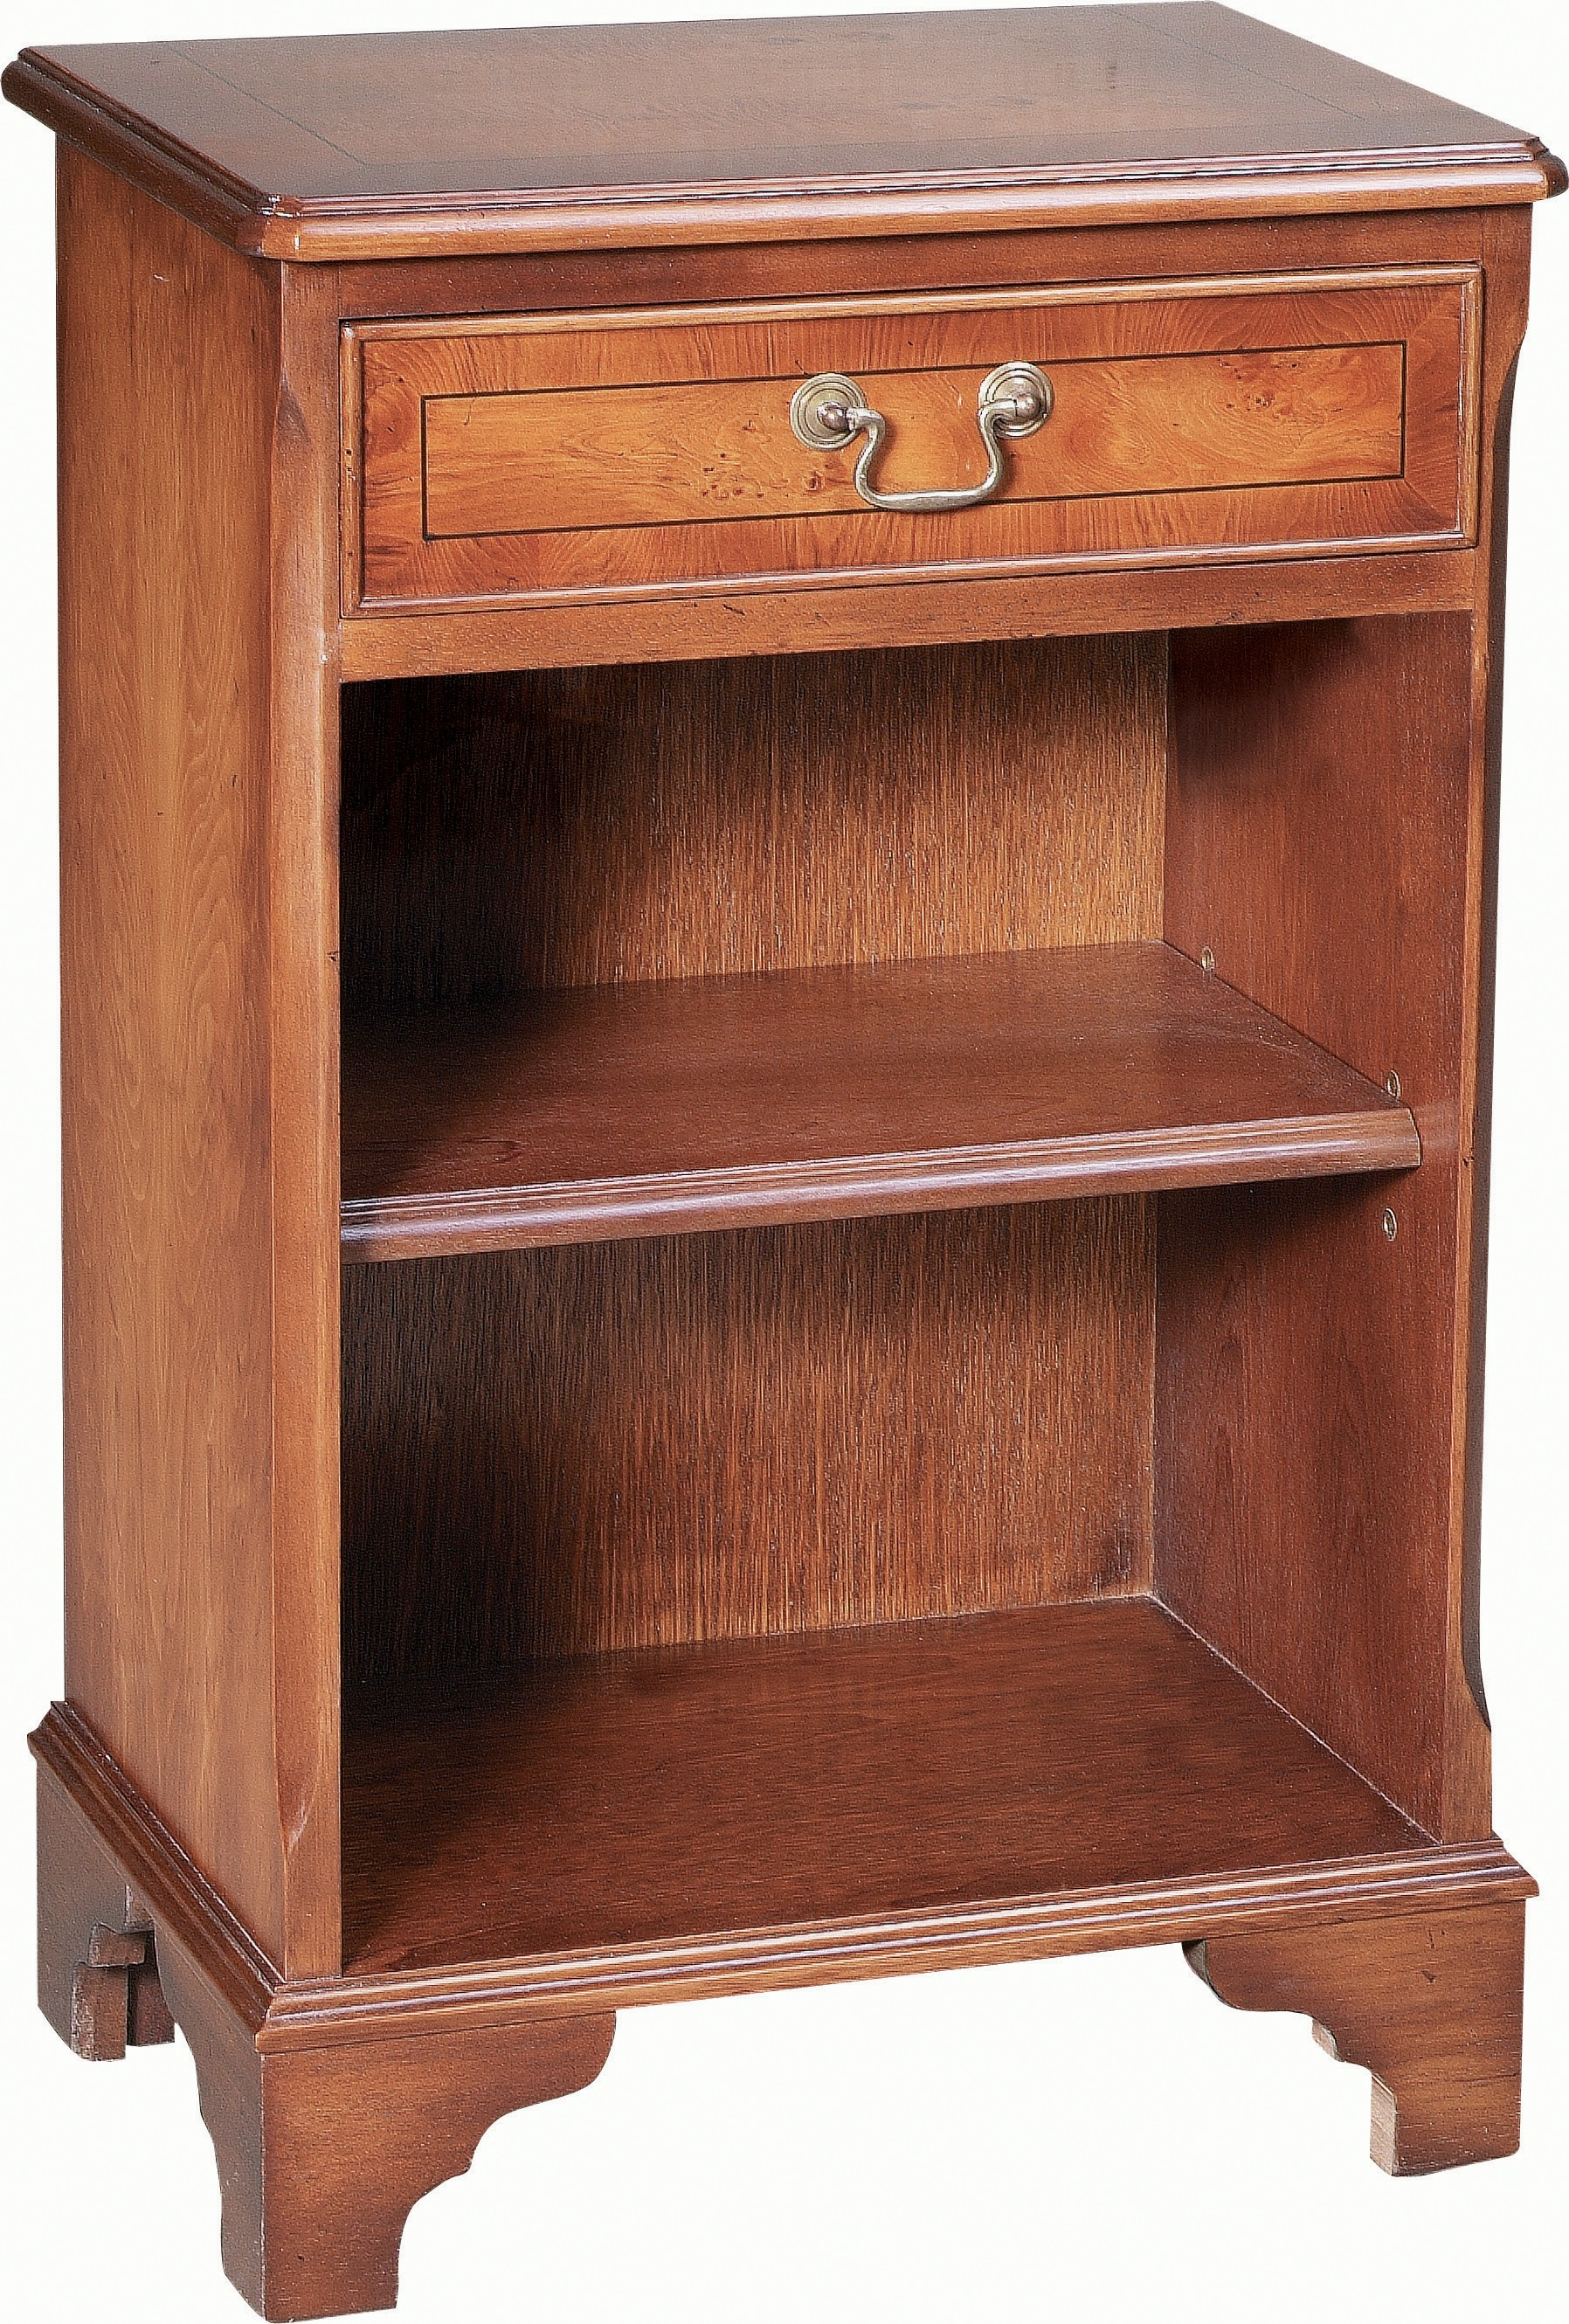 Small Open Bookcase 1 Drawer Bedside Cabinets